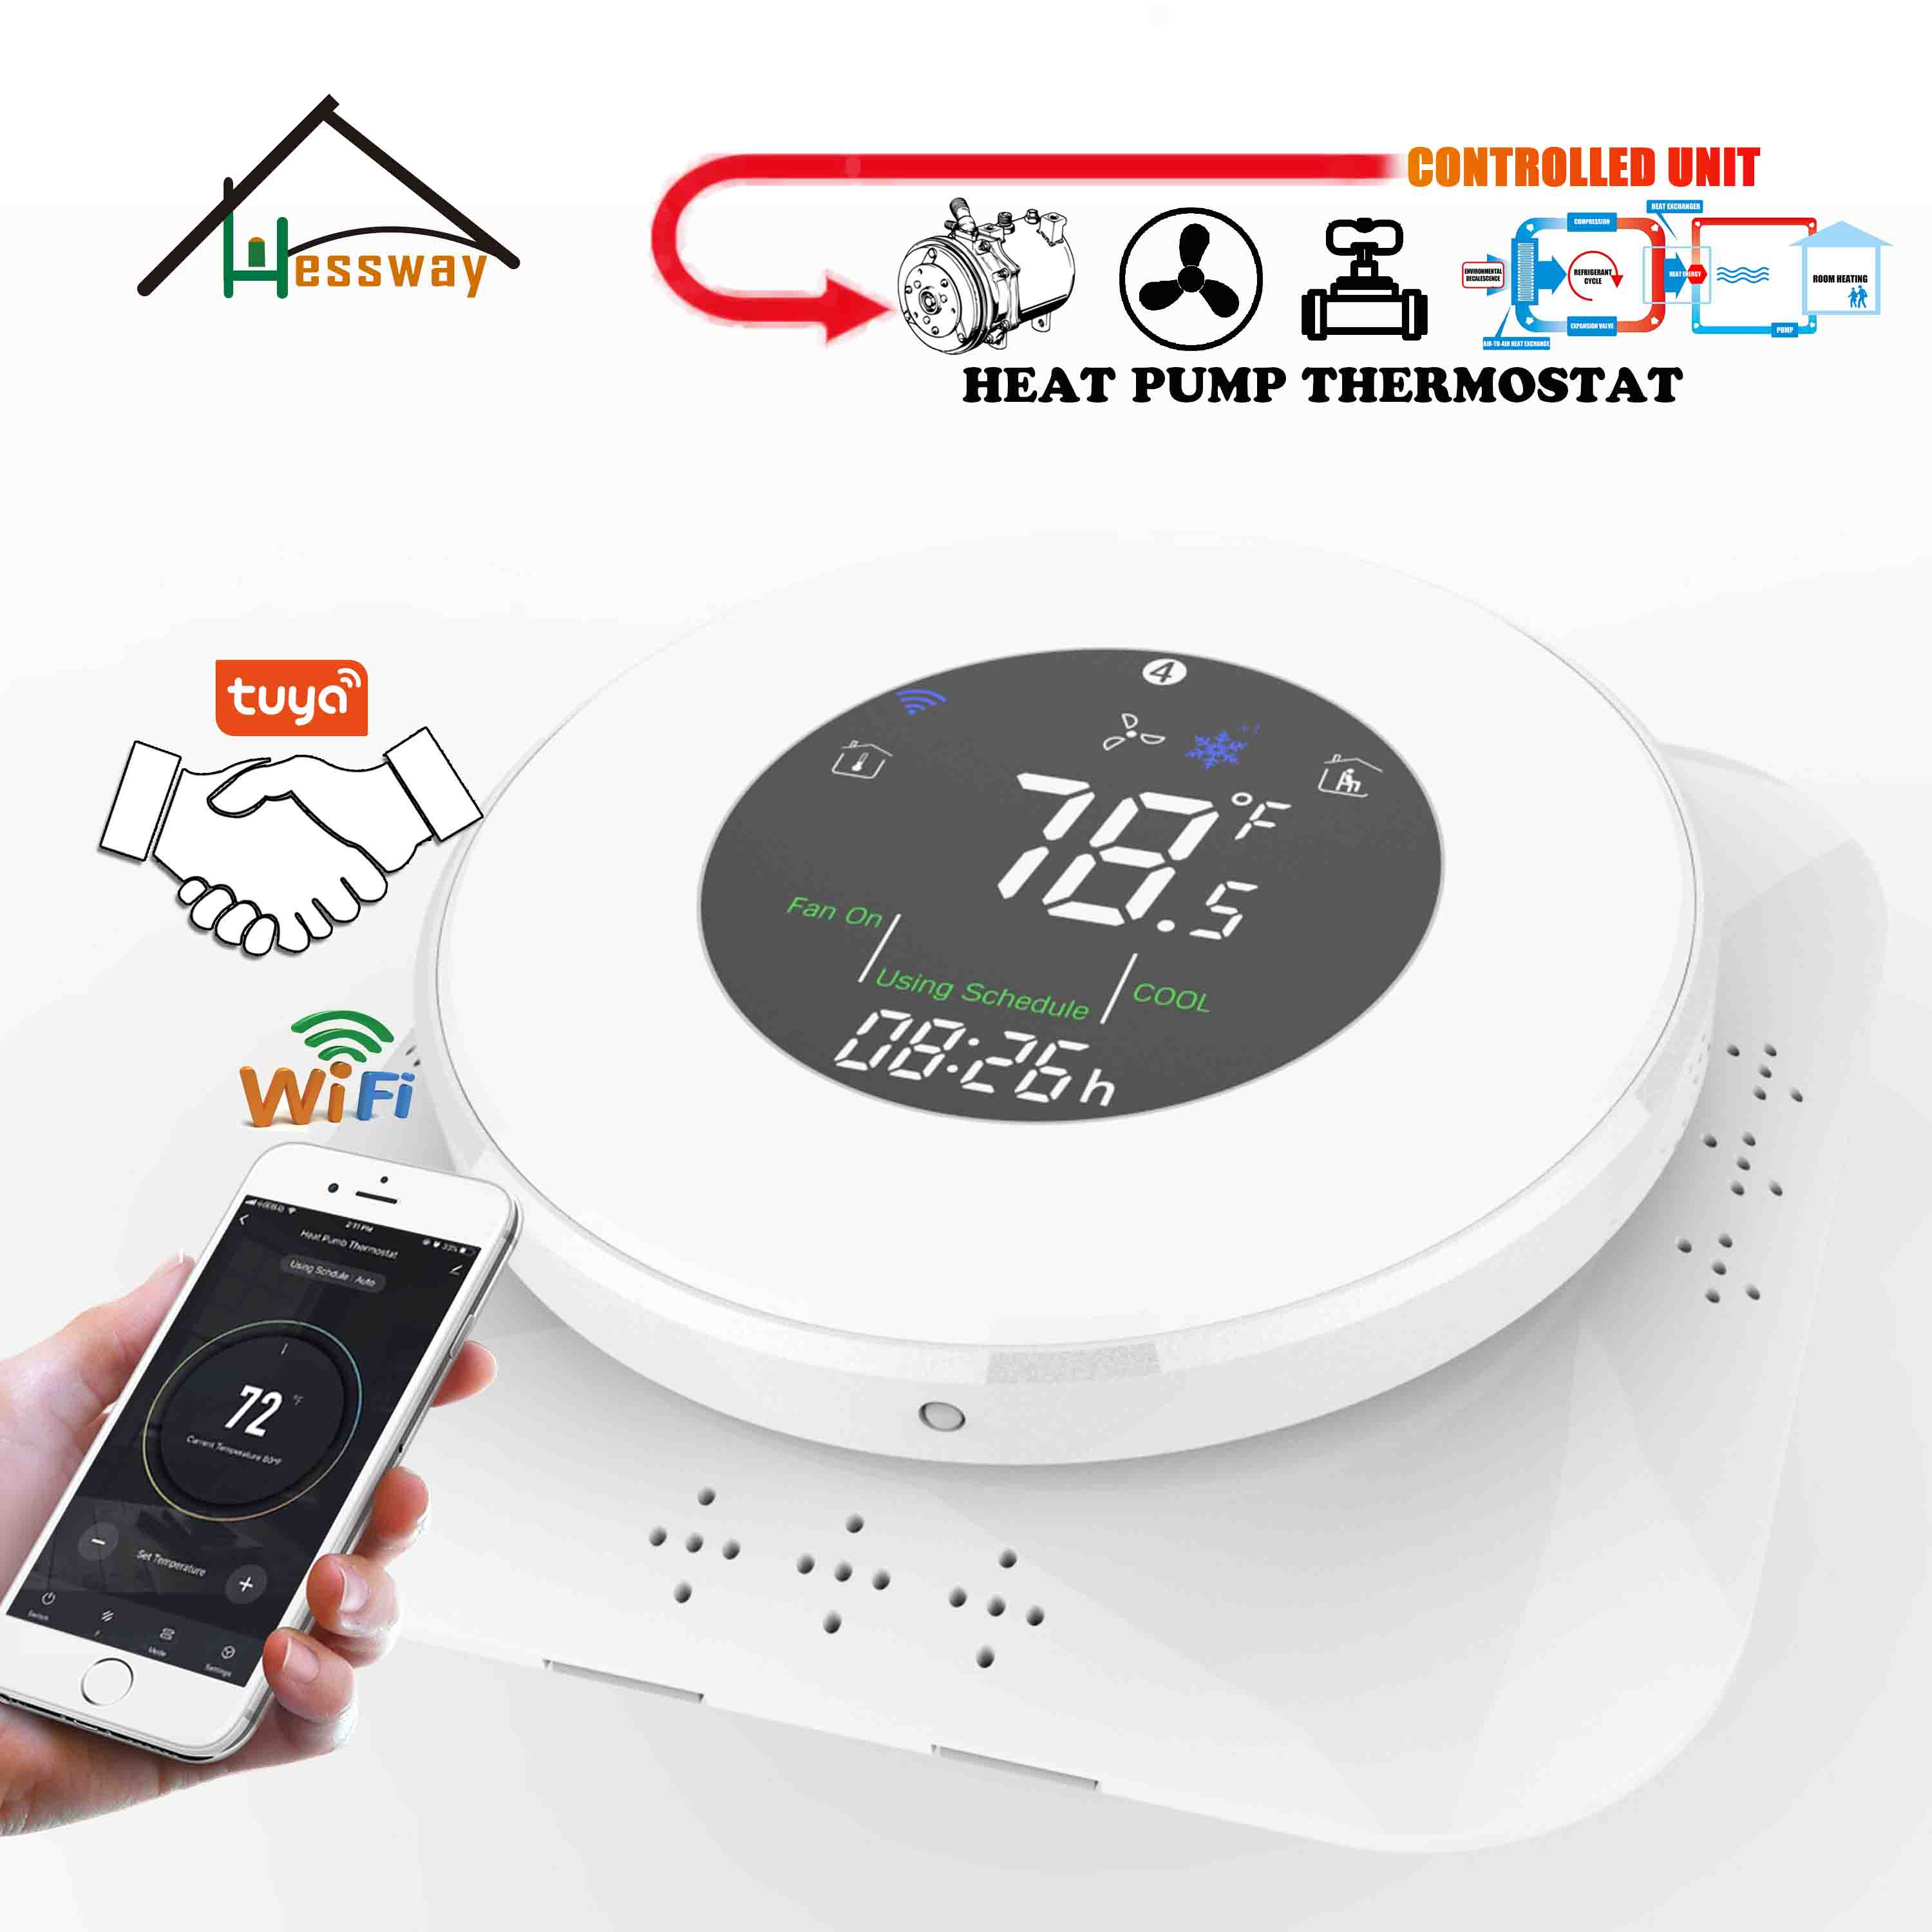 HESSWAY Heat Controller Heat Pump Thermostat For WIFI Air Energy Heating & Cooling Compressor Relay